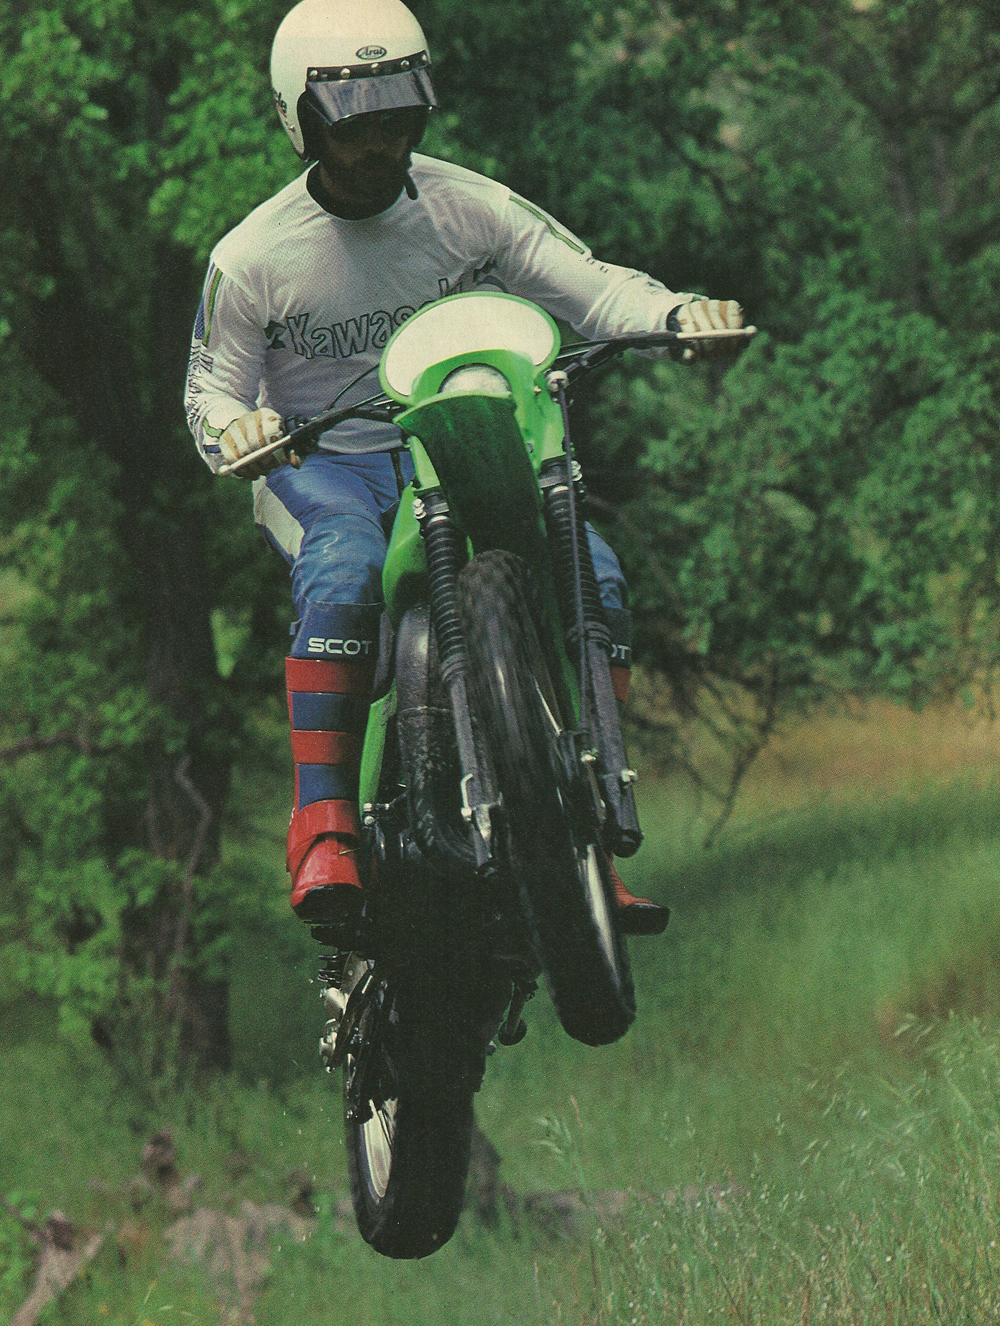 1979 Kawasaki KDX400 off road test 1.jpg